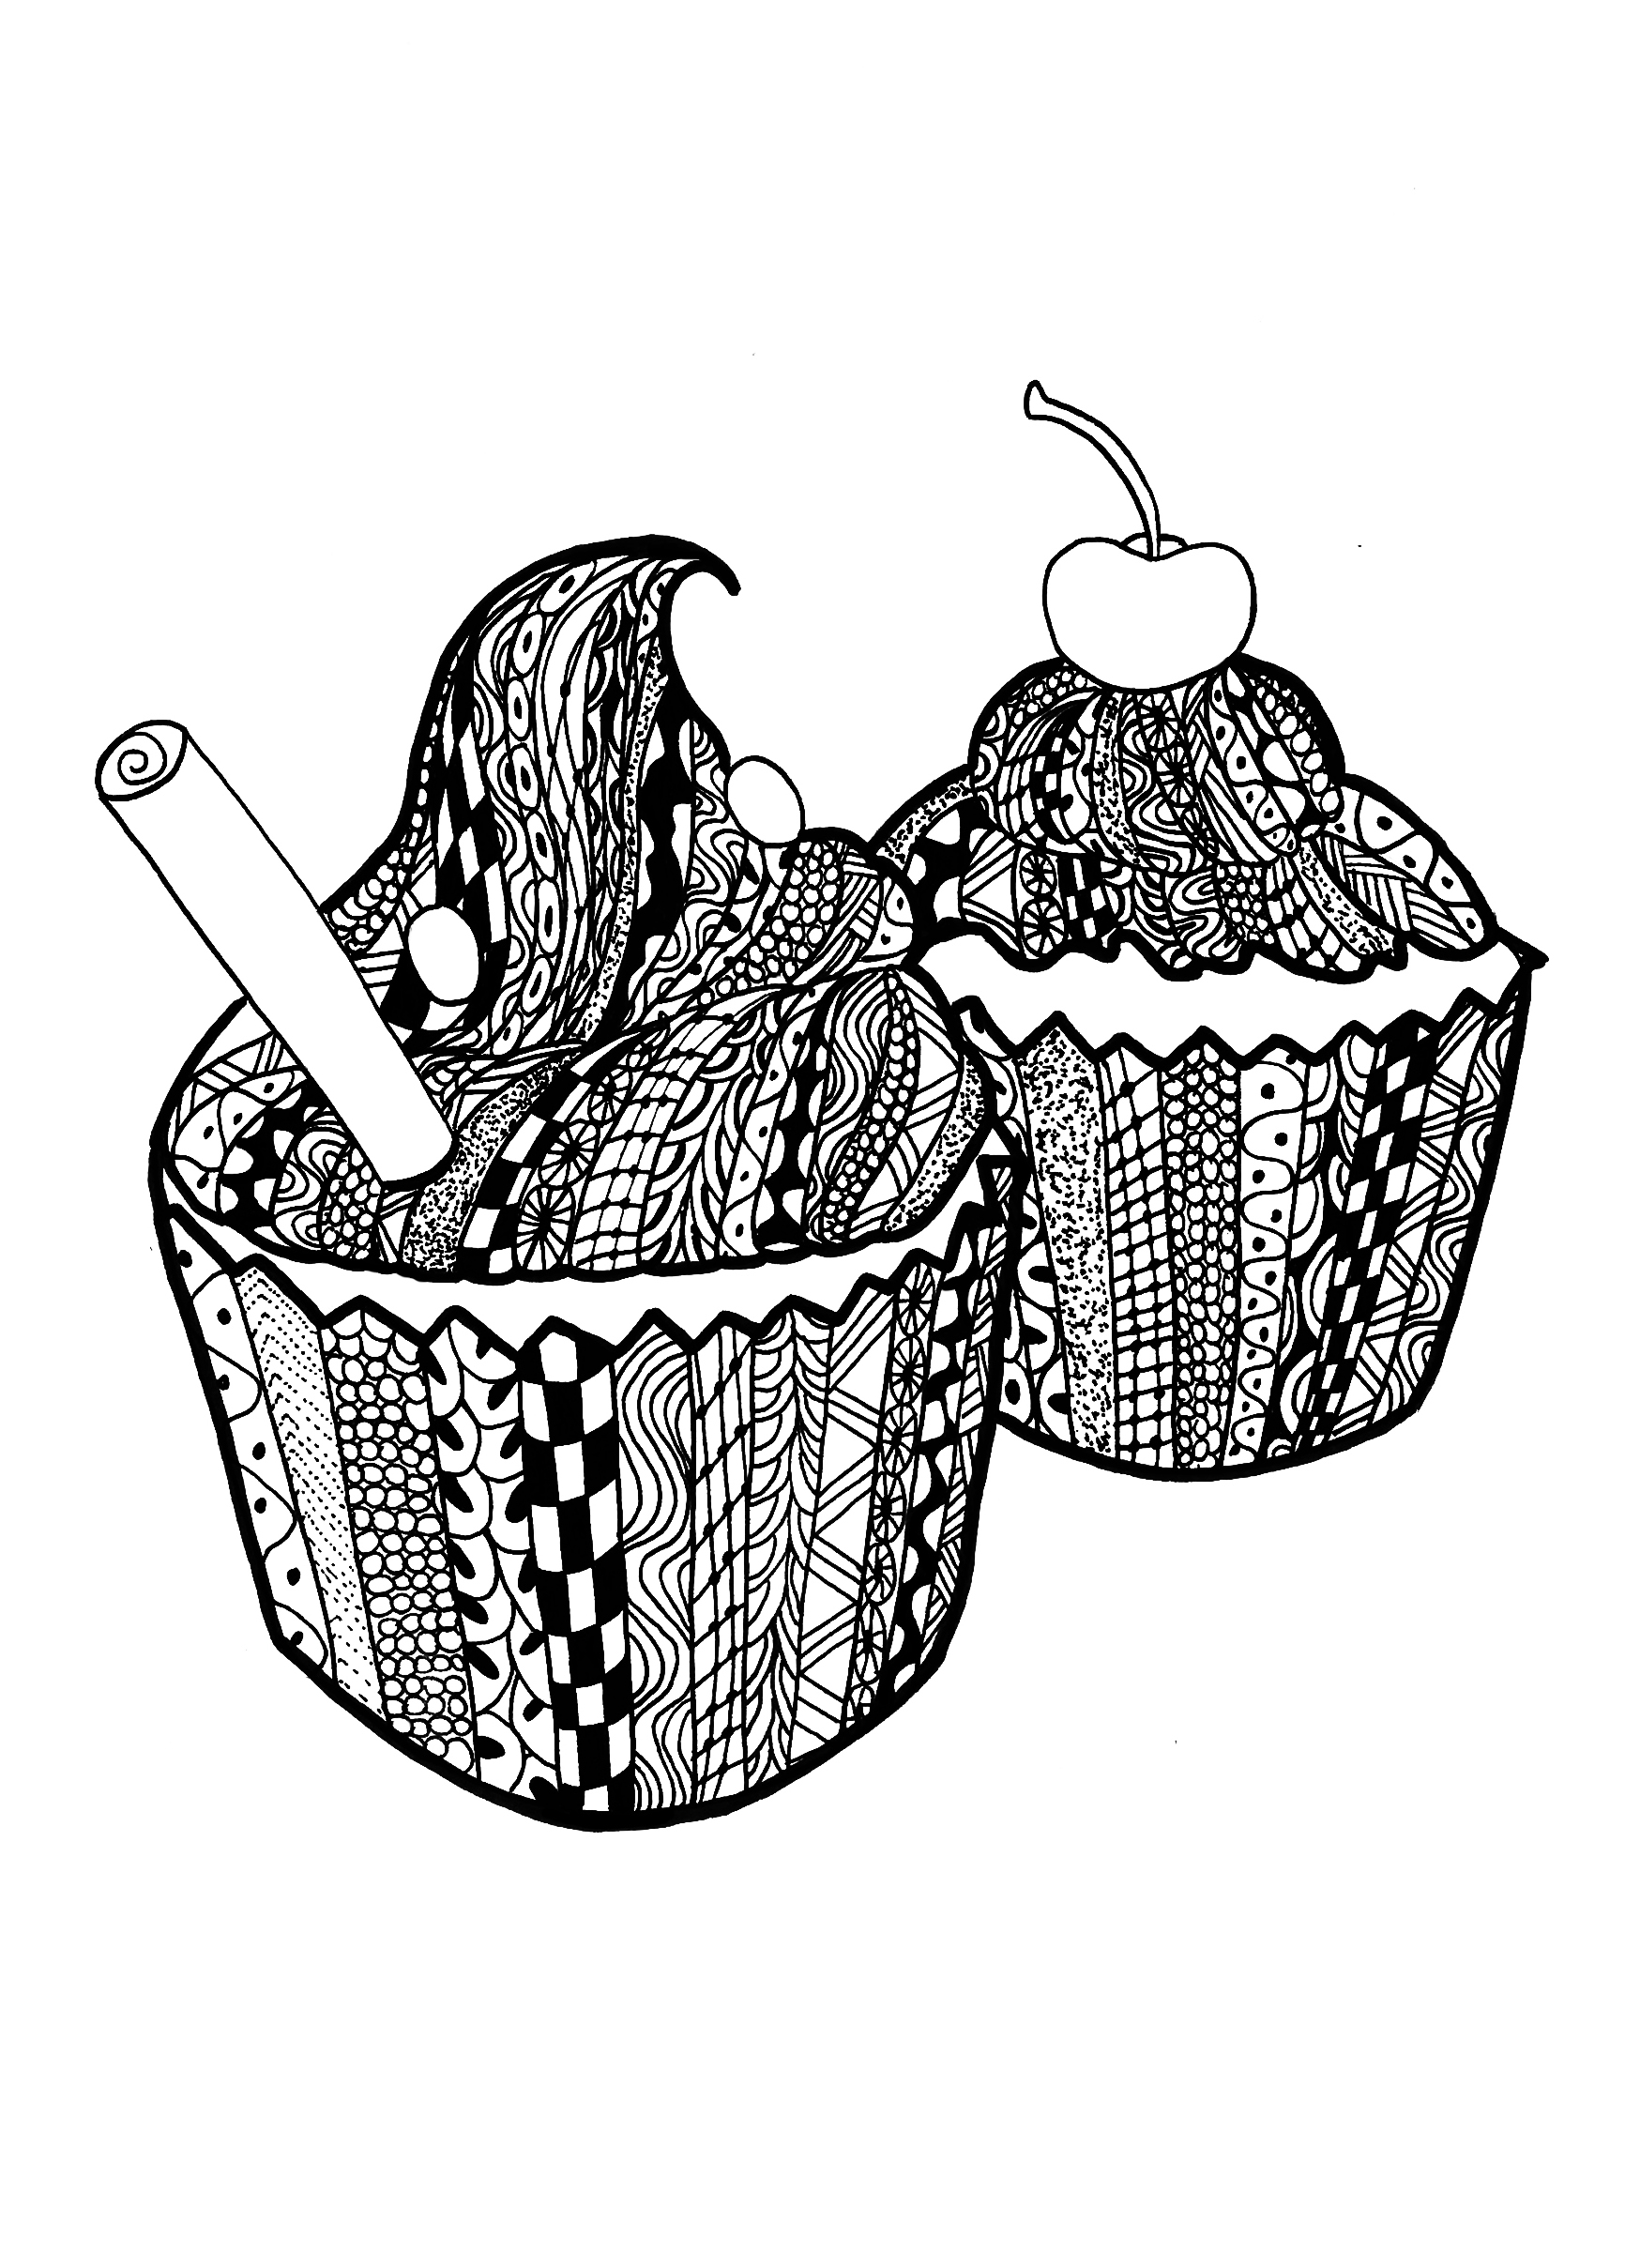 Coloring pages for adults zentangle - Coloring Page Adults Zentangle Cupcakes Celine